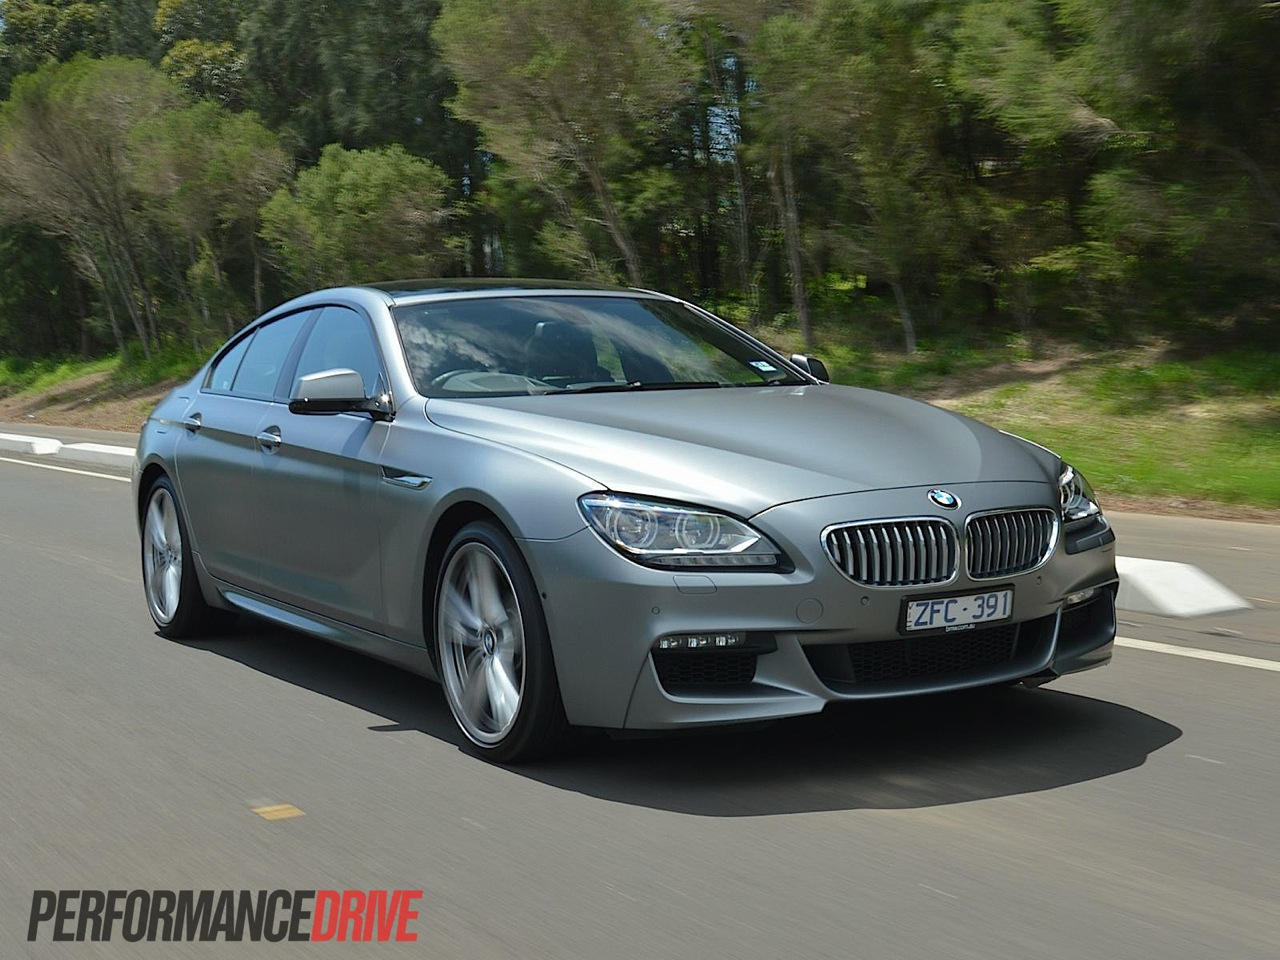 2013 BMW 650i Gran Coupe Frozen Grey driving